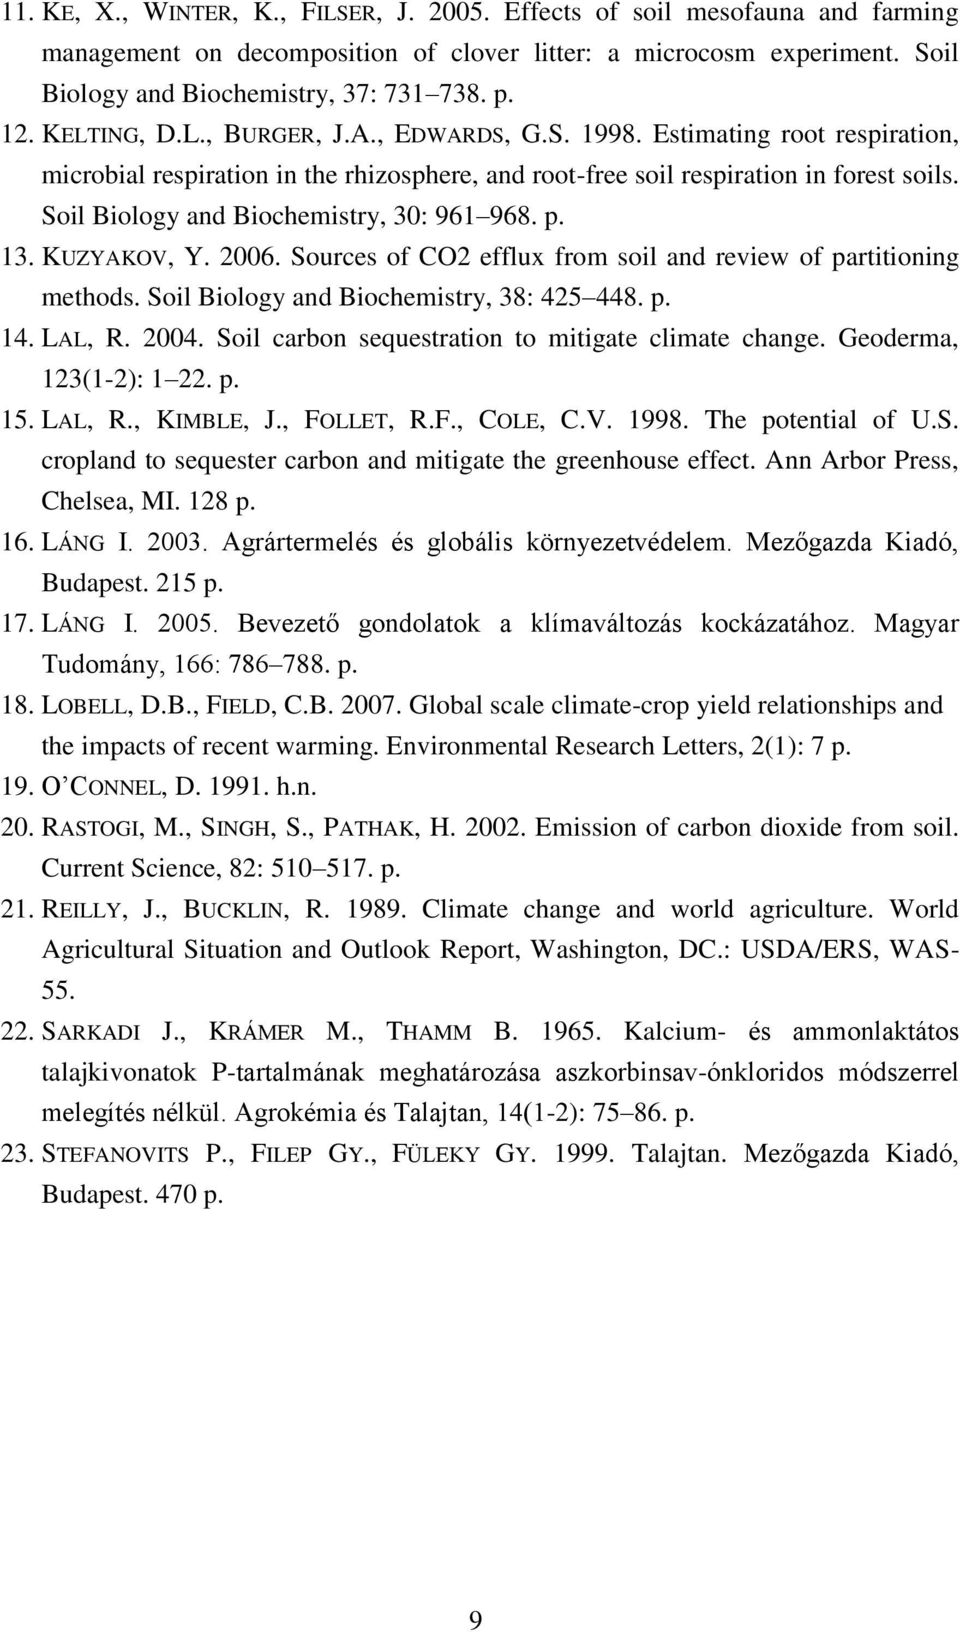 Soil Biology and Biochemistry, 30: 961 968. p. 13. KUZYAKOV, Y. 2006. Sources of CO2 efflux from soil and review of partitioning methods. Soil Biology and Biochemistry, 38: 425 448. p. 14. LAL, R.